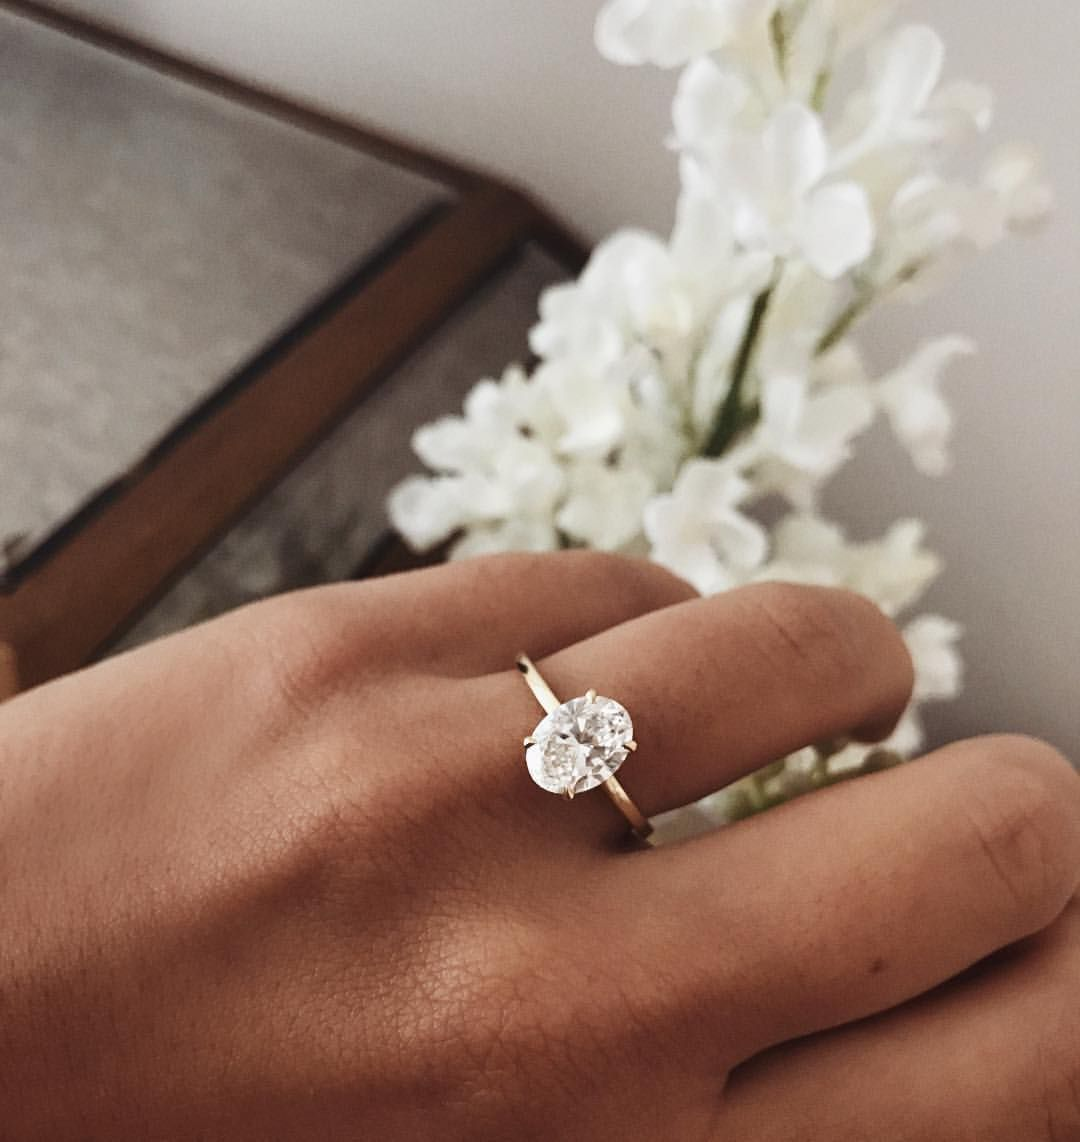 1 487 Likes 31 Comments Thessy Kouzoukas Thessy K On Instagram A Reminder Every Time I Wedding Rings Simple Wedding Rings Engagement Wedding Rings Oval